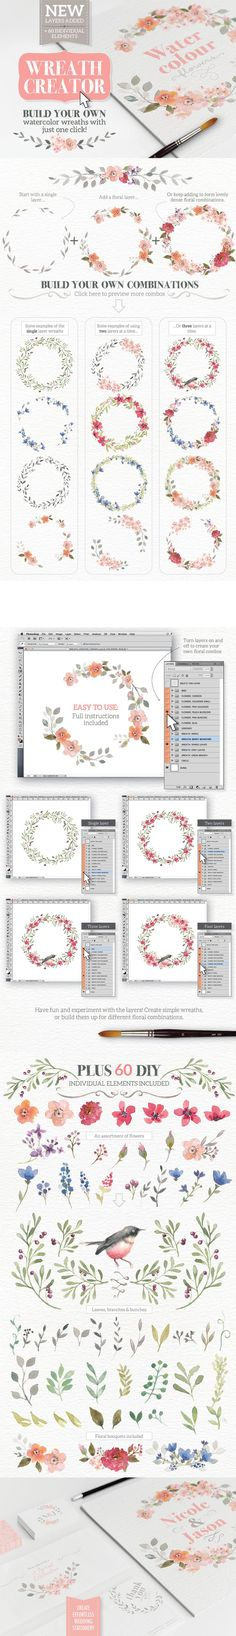 The Essential, Creative Design Arsenal (1000s of Best-Selling Resources) Just $29 - Watercolour Wreath Creator: